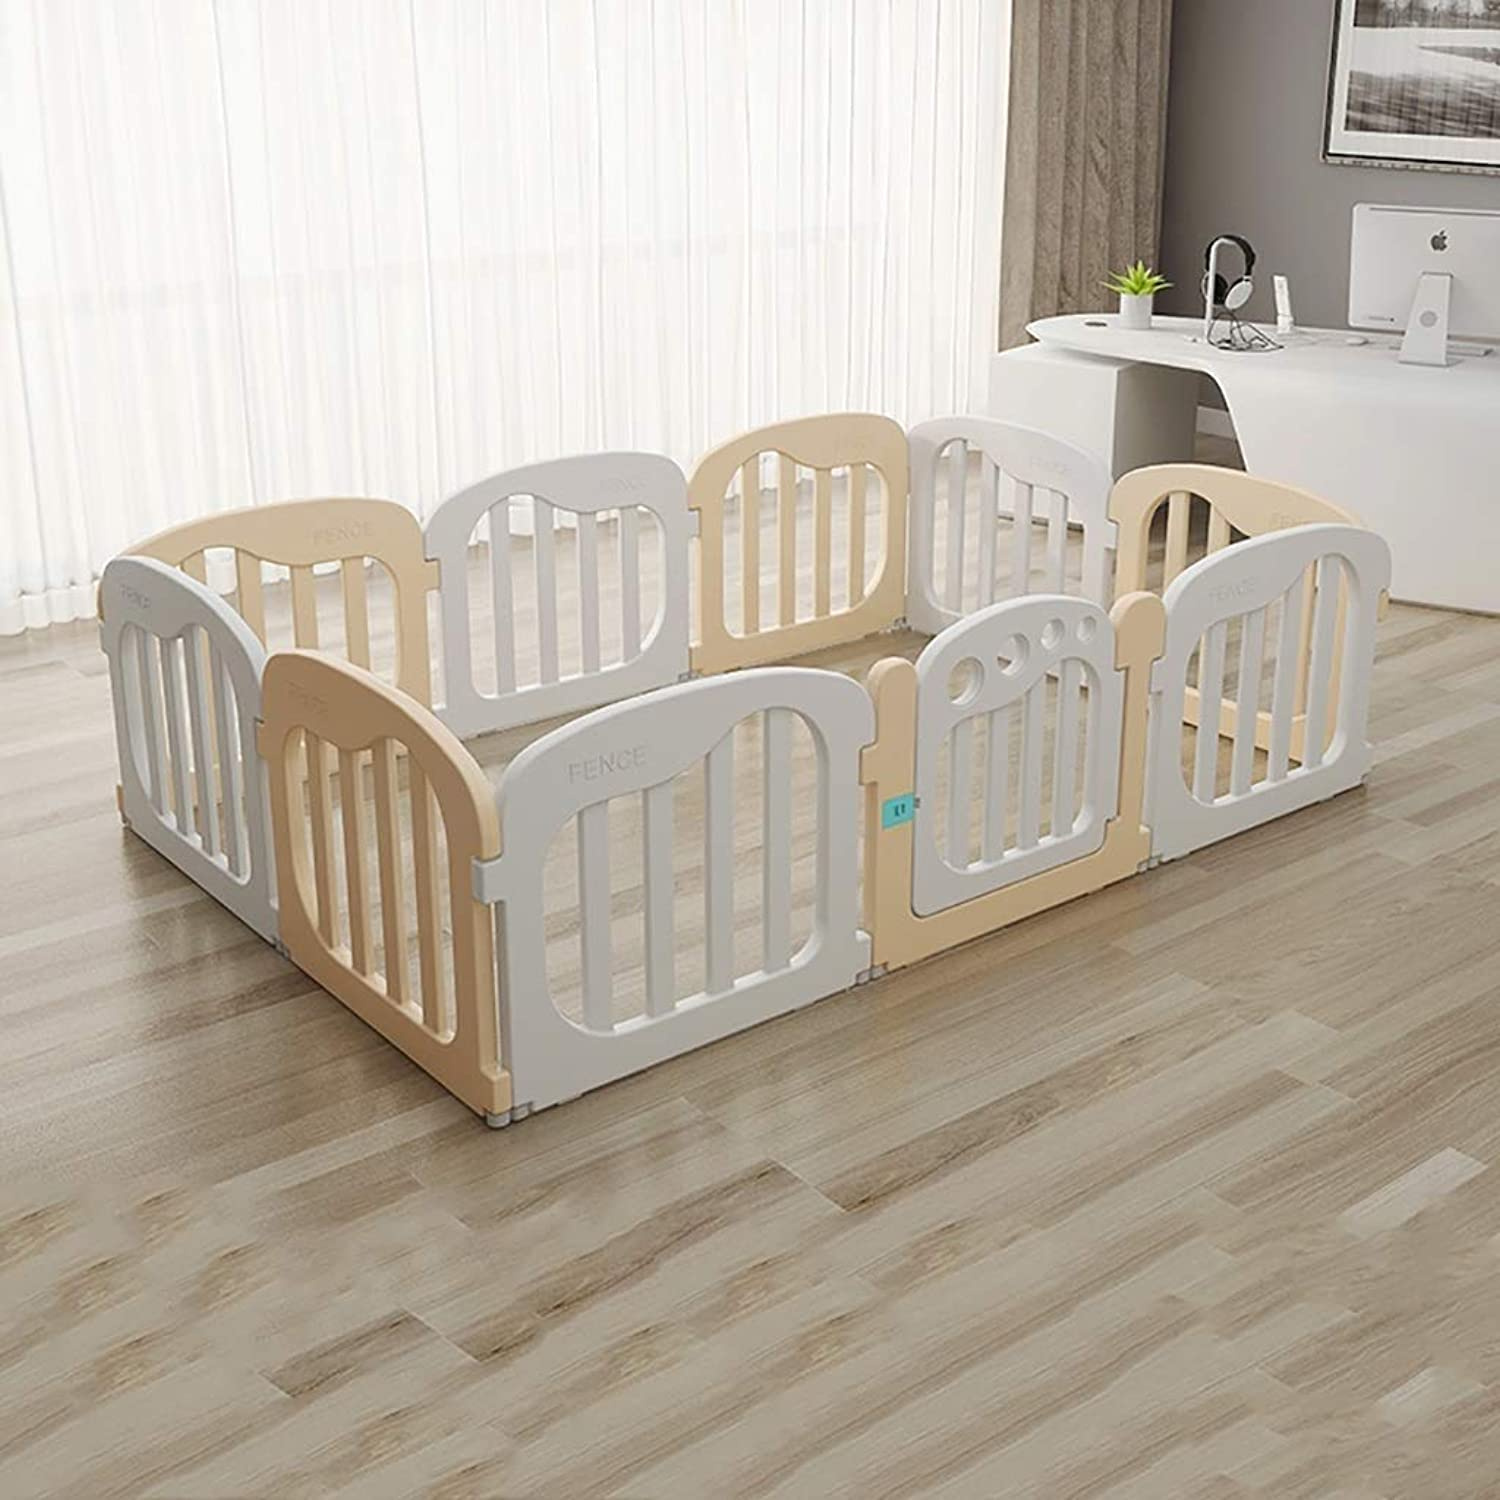 Baby Play Fence Room Divider Playground Indoor and Outdoor (color   Beige+White)